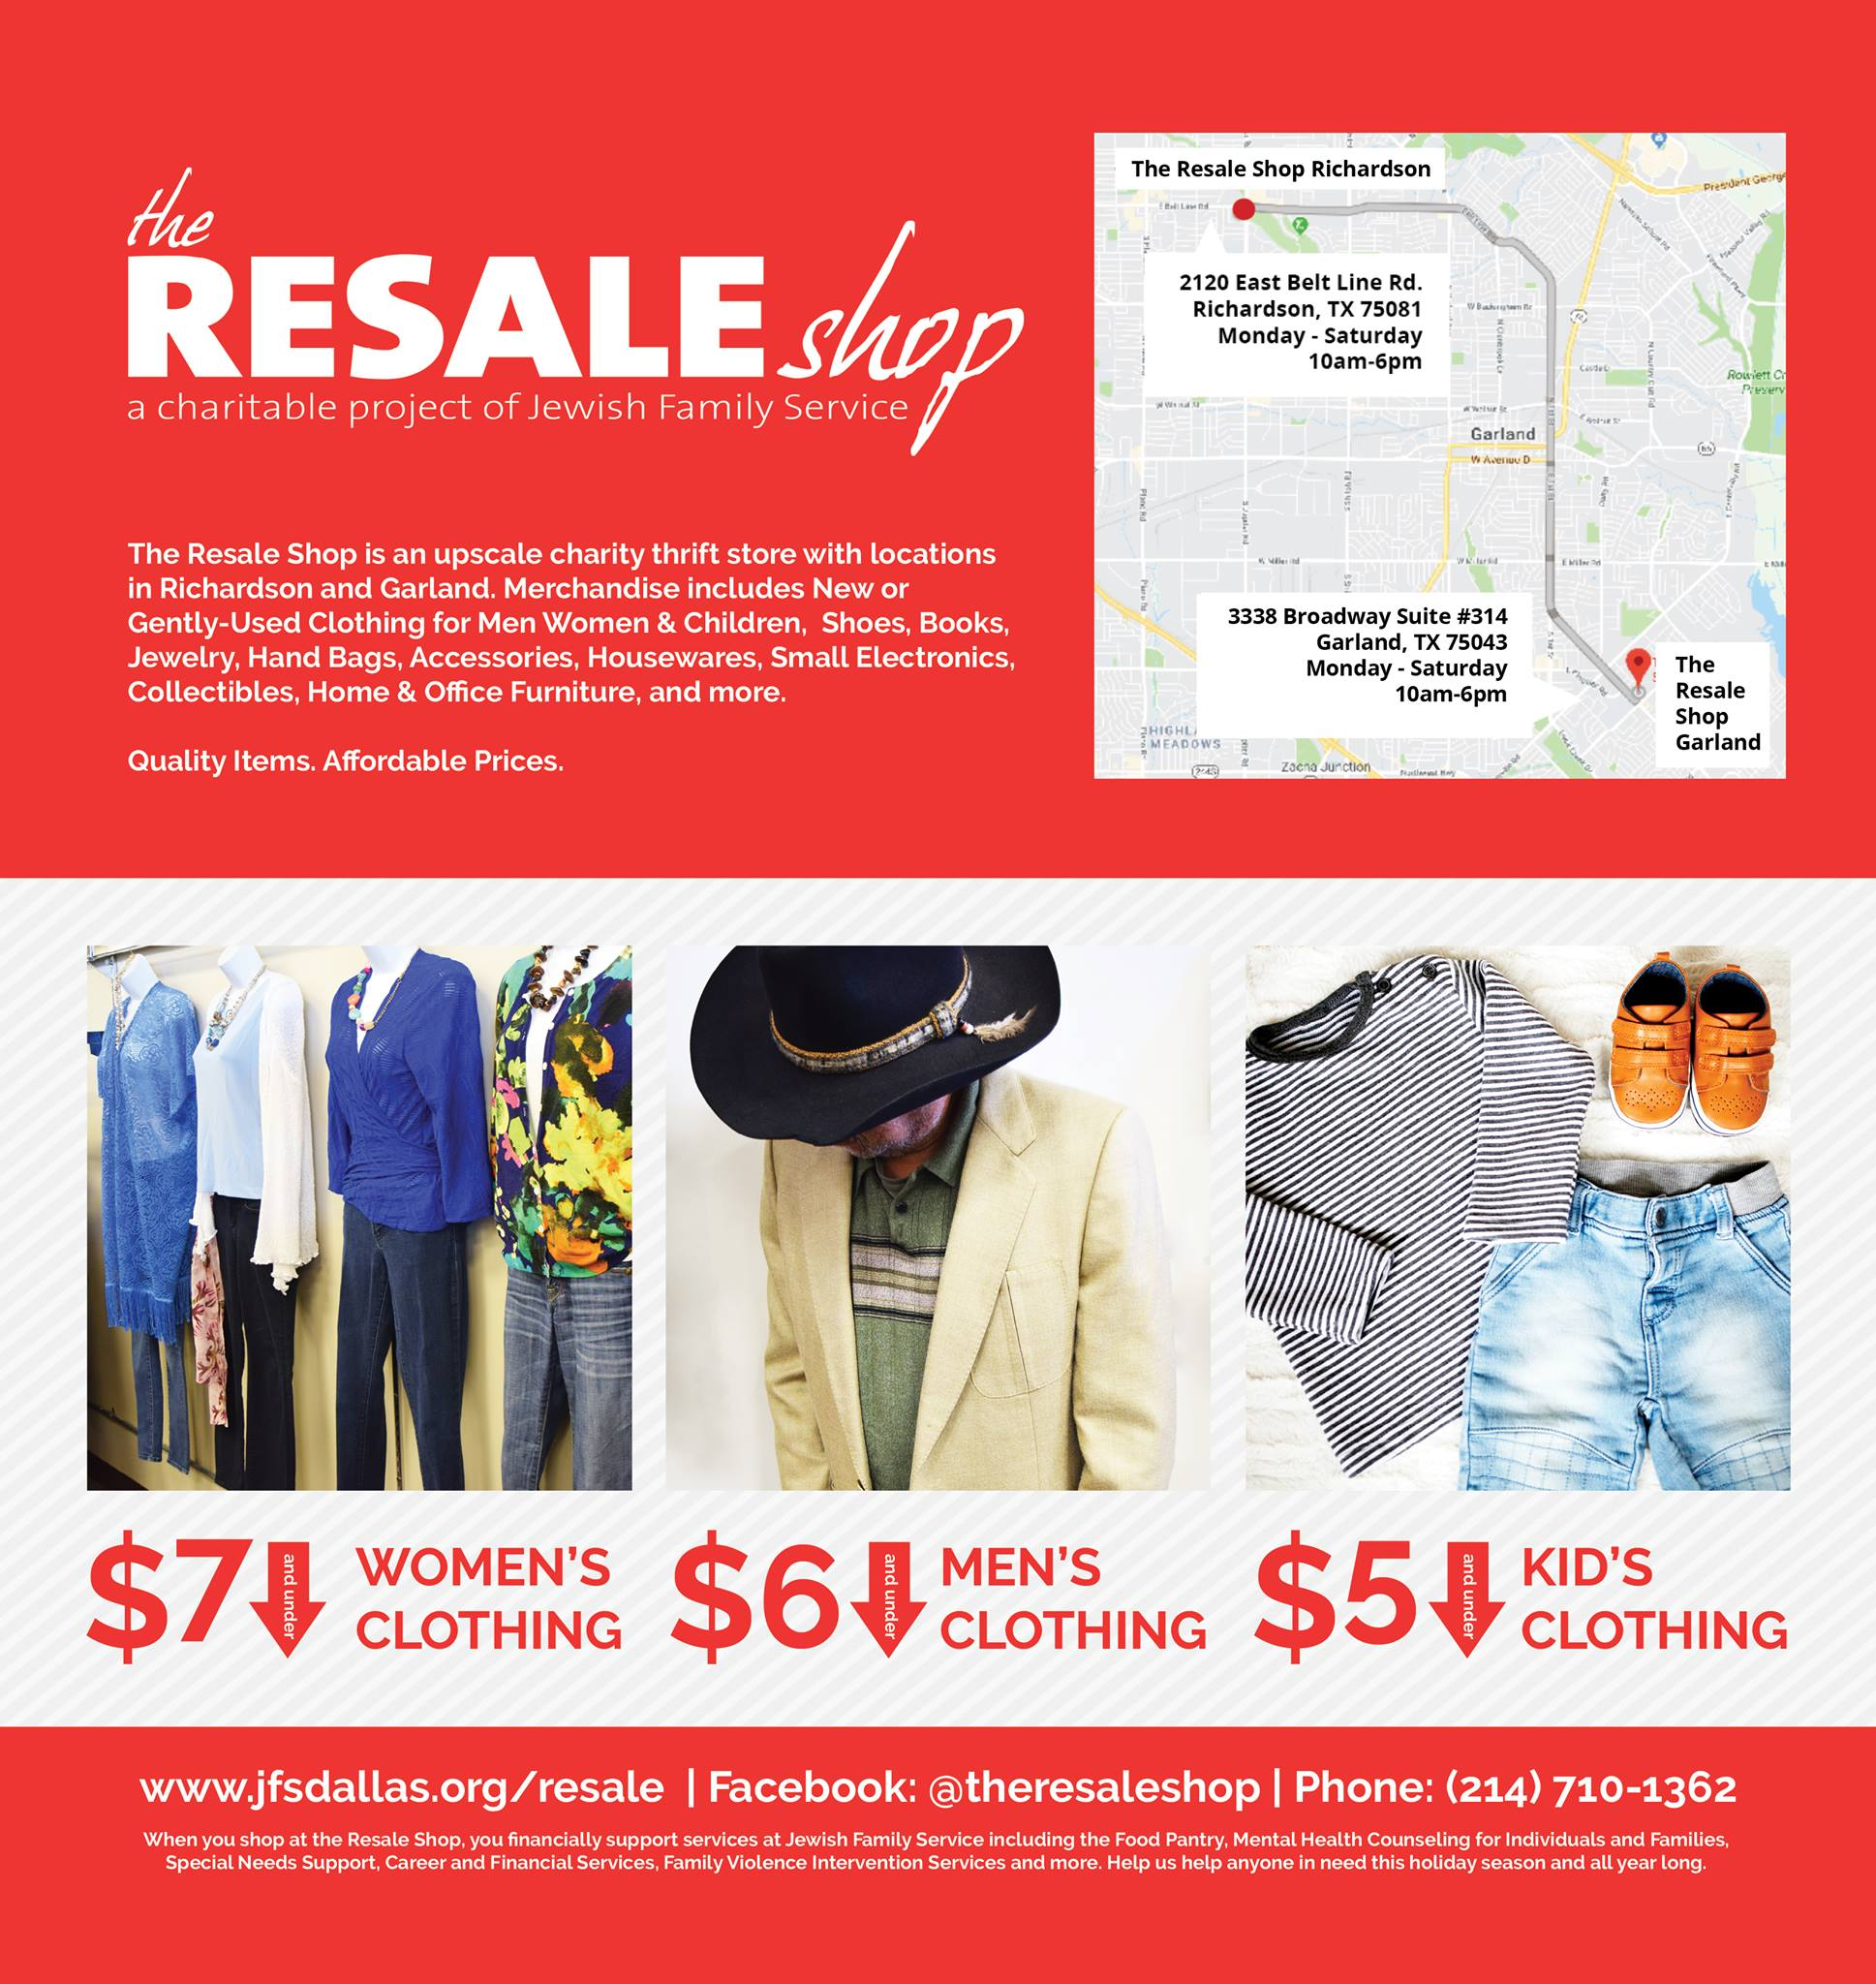 Resale Shop Dallas Morning News Ad